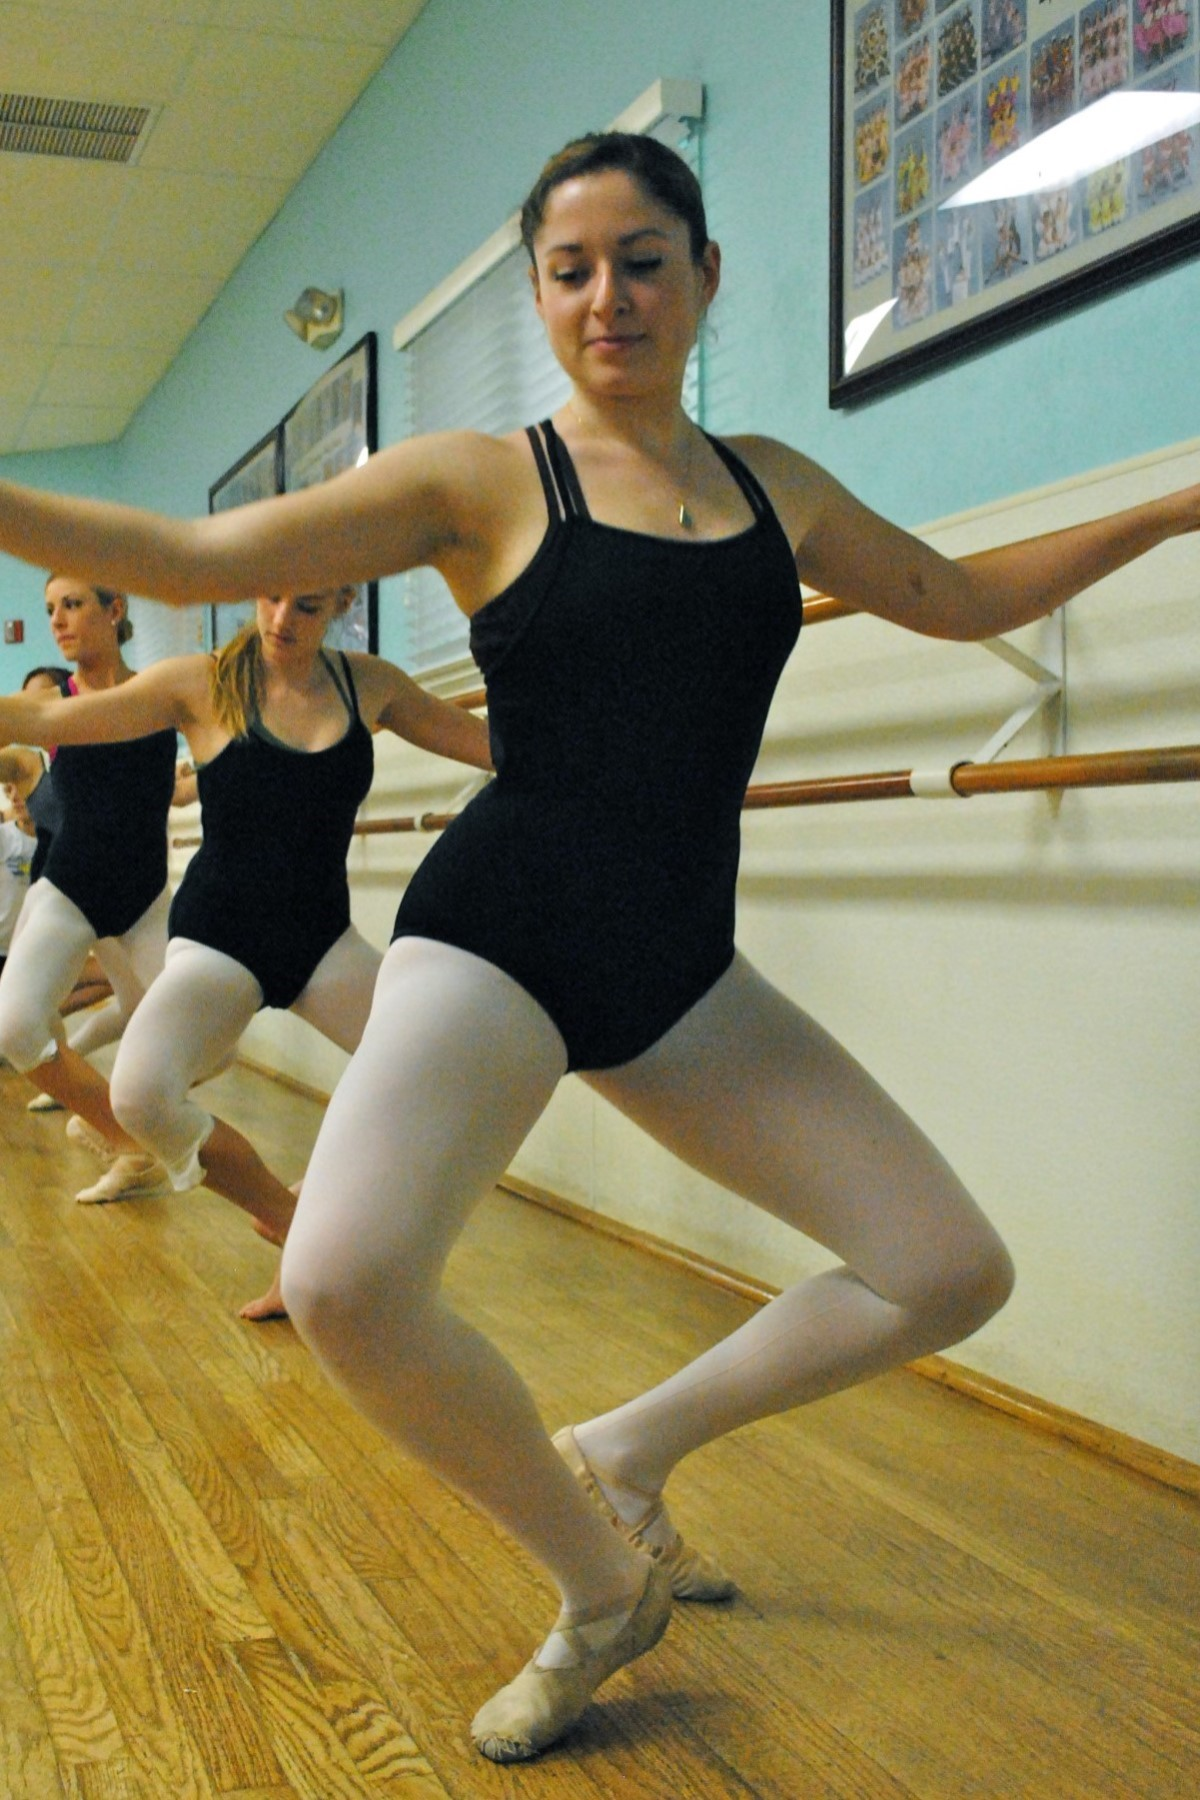 A dancer doing a plie at the barre